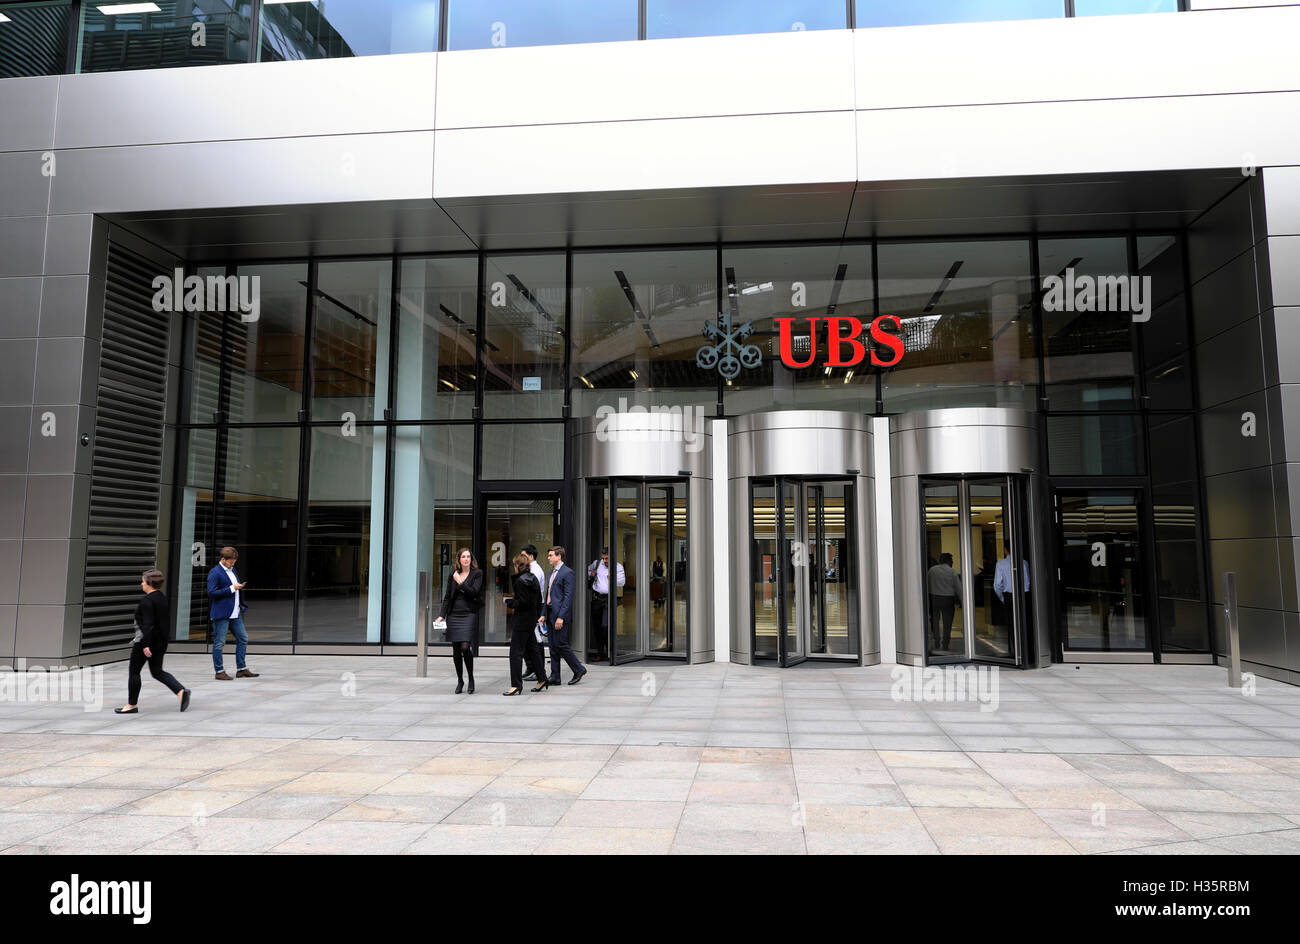 Office workers at the entrance to 5 Broadgate UBS headquarters sign financial building designed by  'Make Architects' - Stock Image